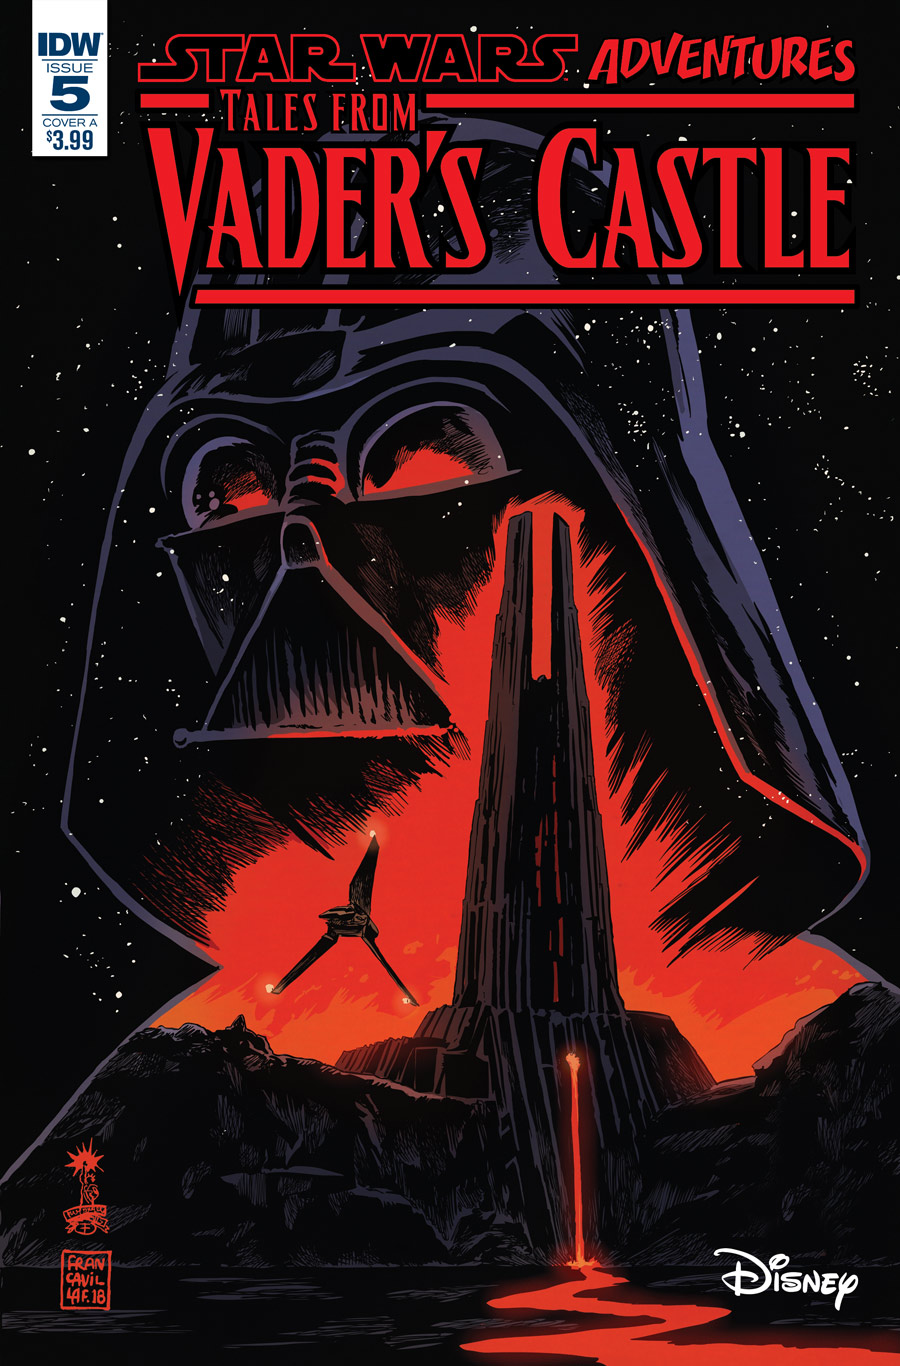 The cover of Tales from Vader's Castle #5.